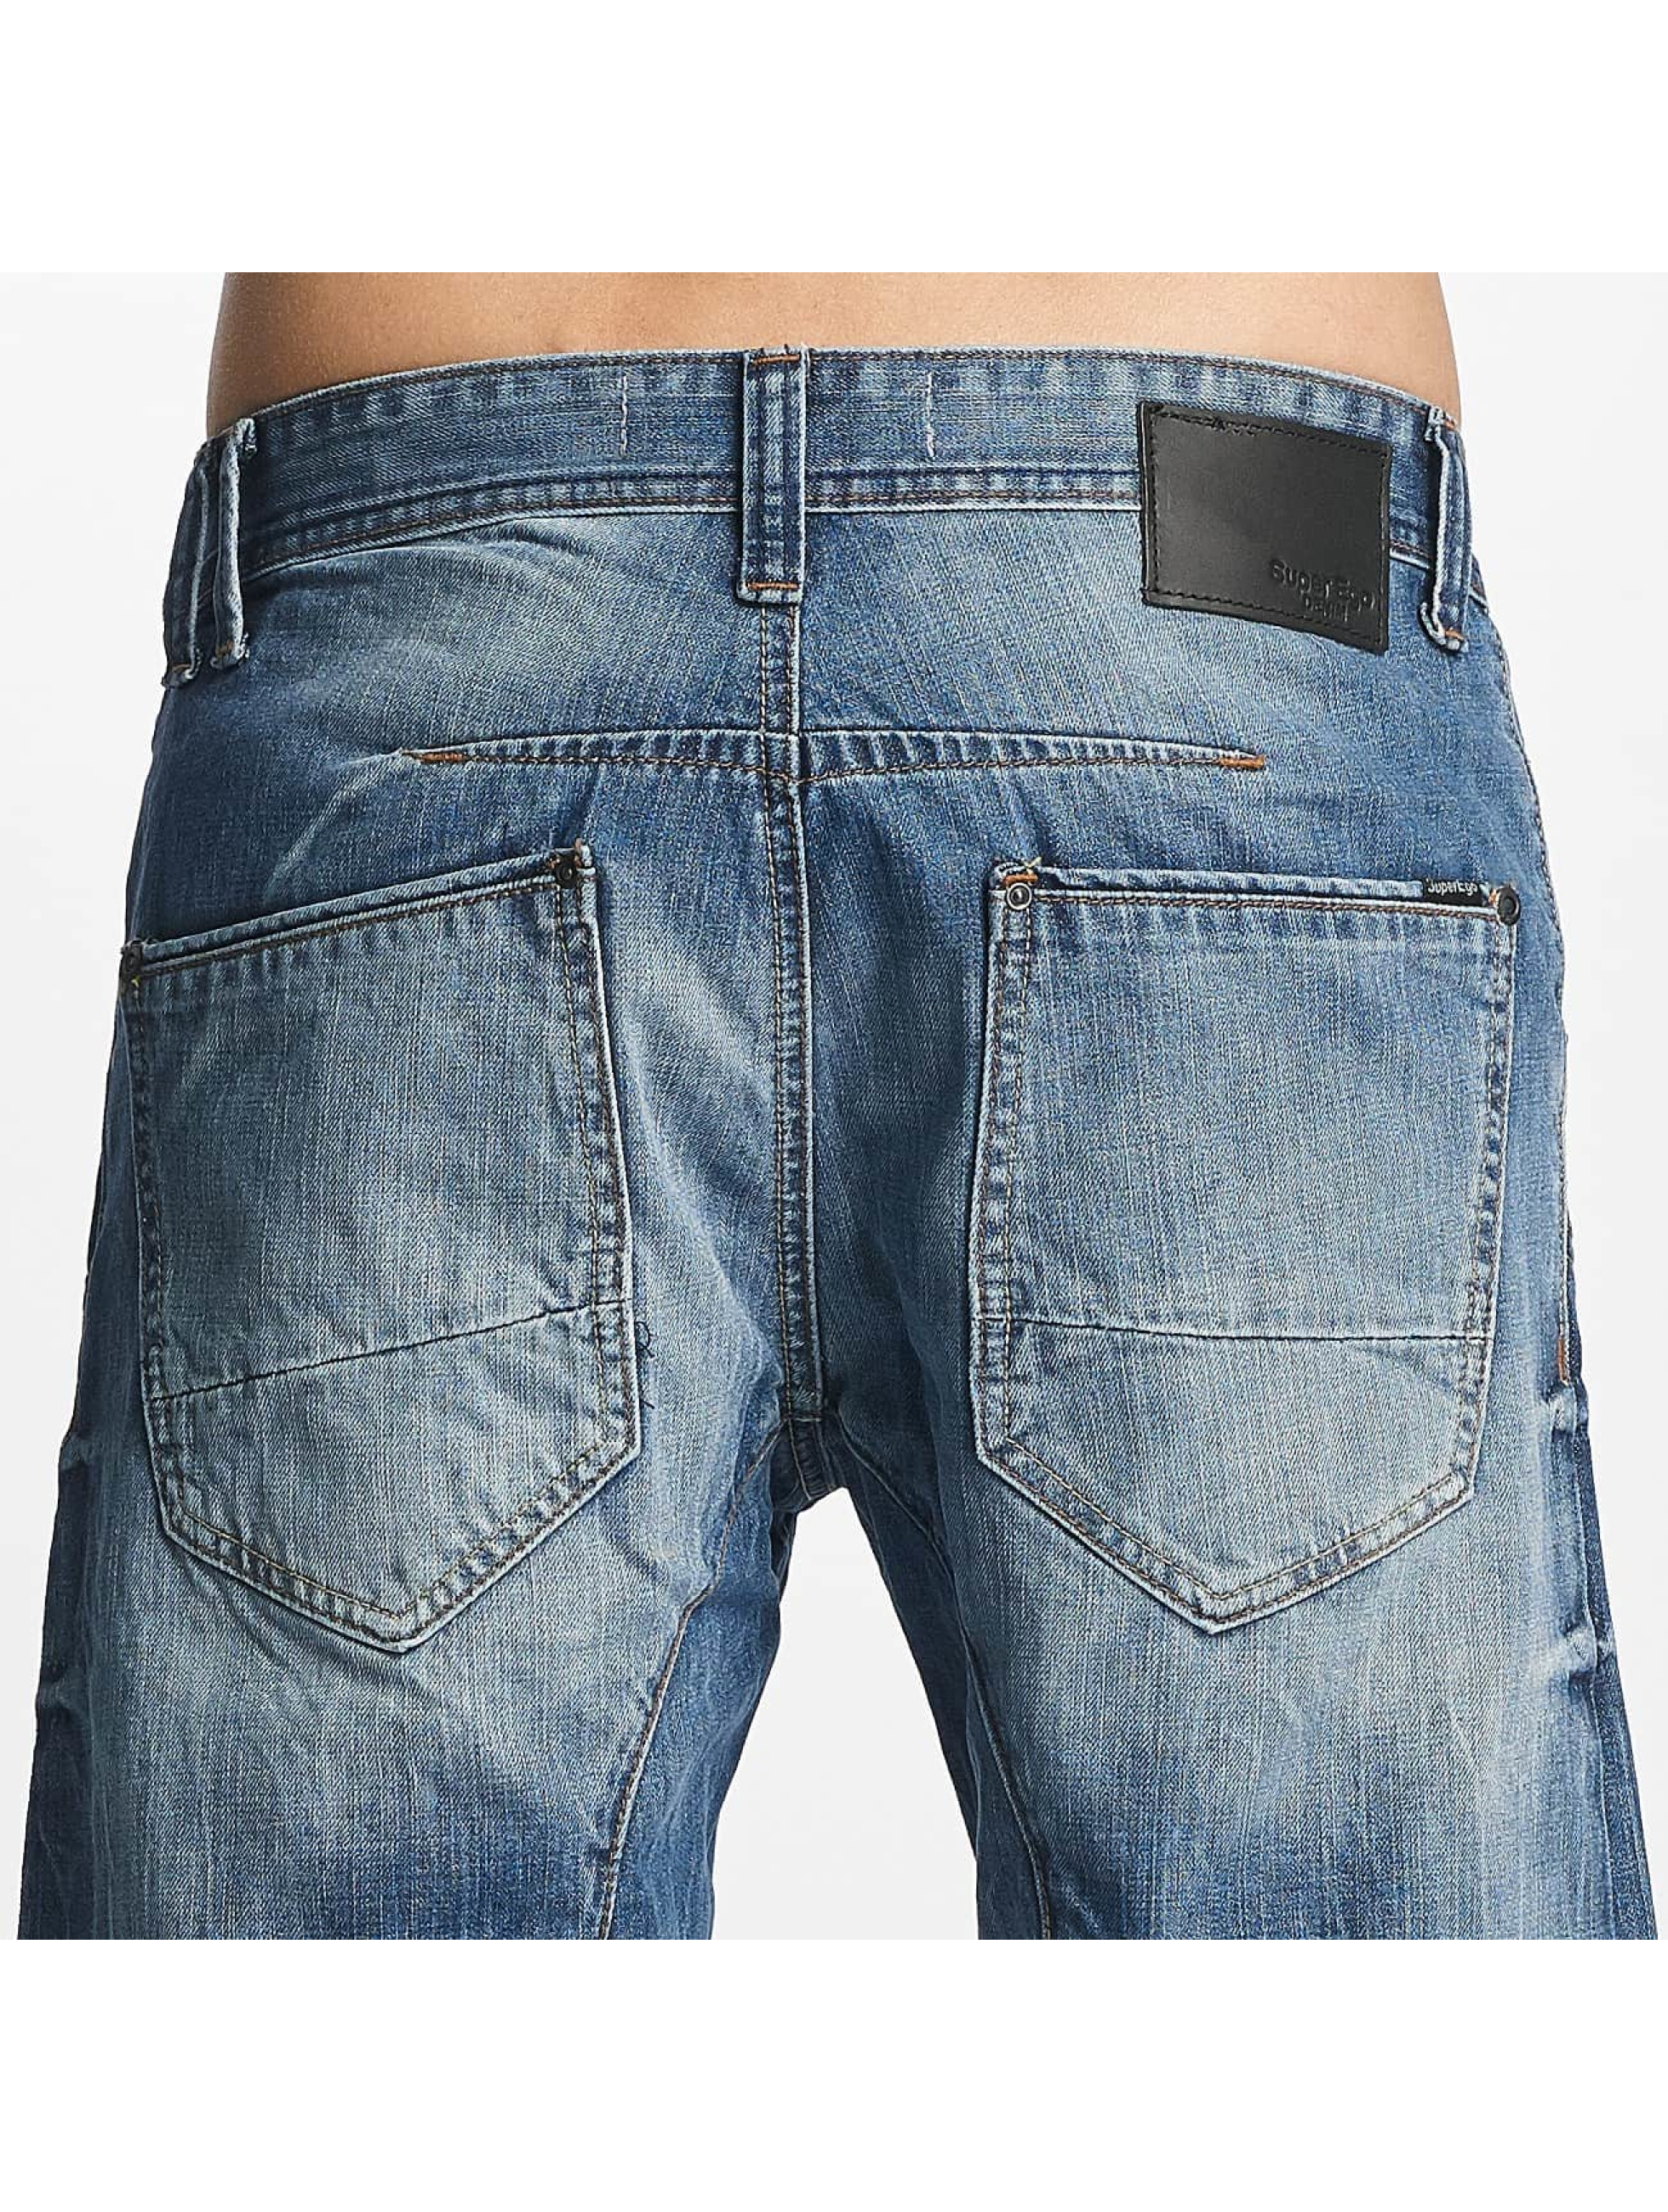 ID Denim Shorts Denim blau